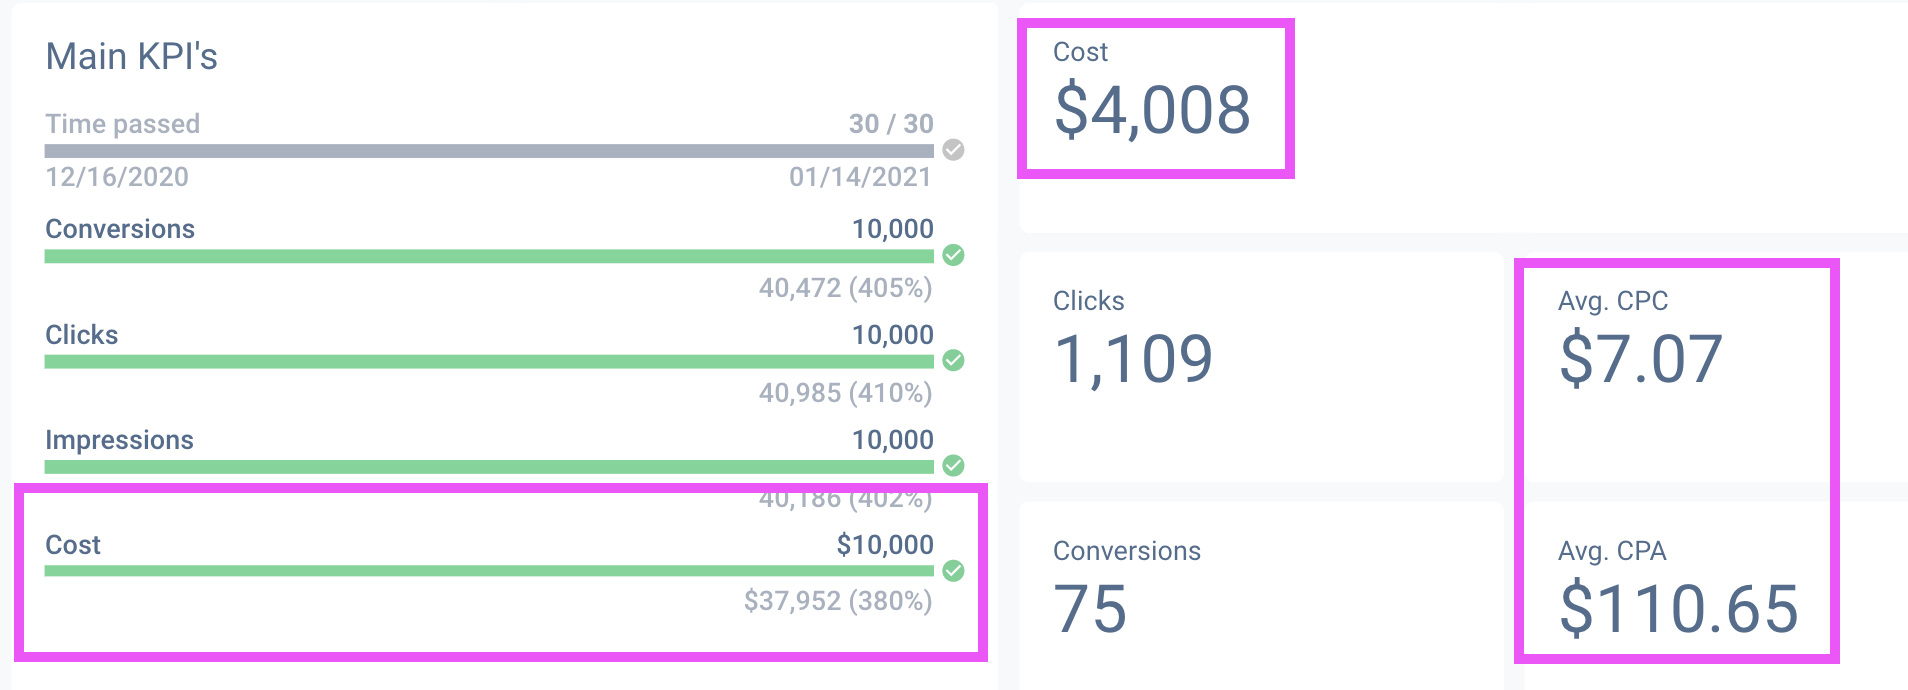 Make sure to include budgets and CPC metrics within your PPC audit report.